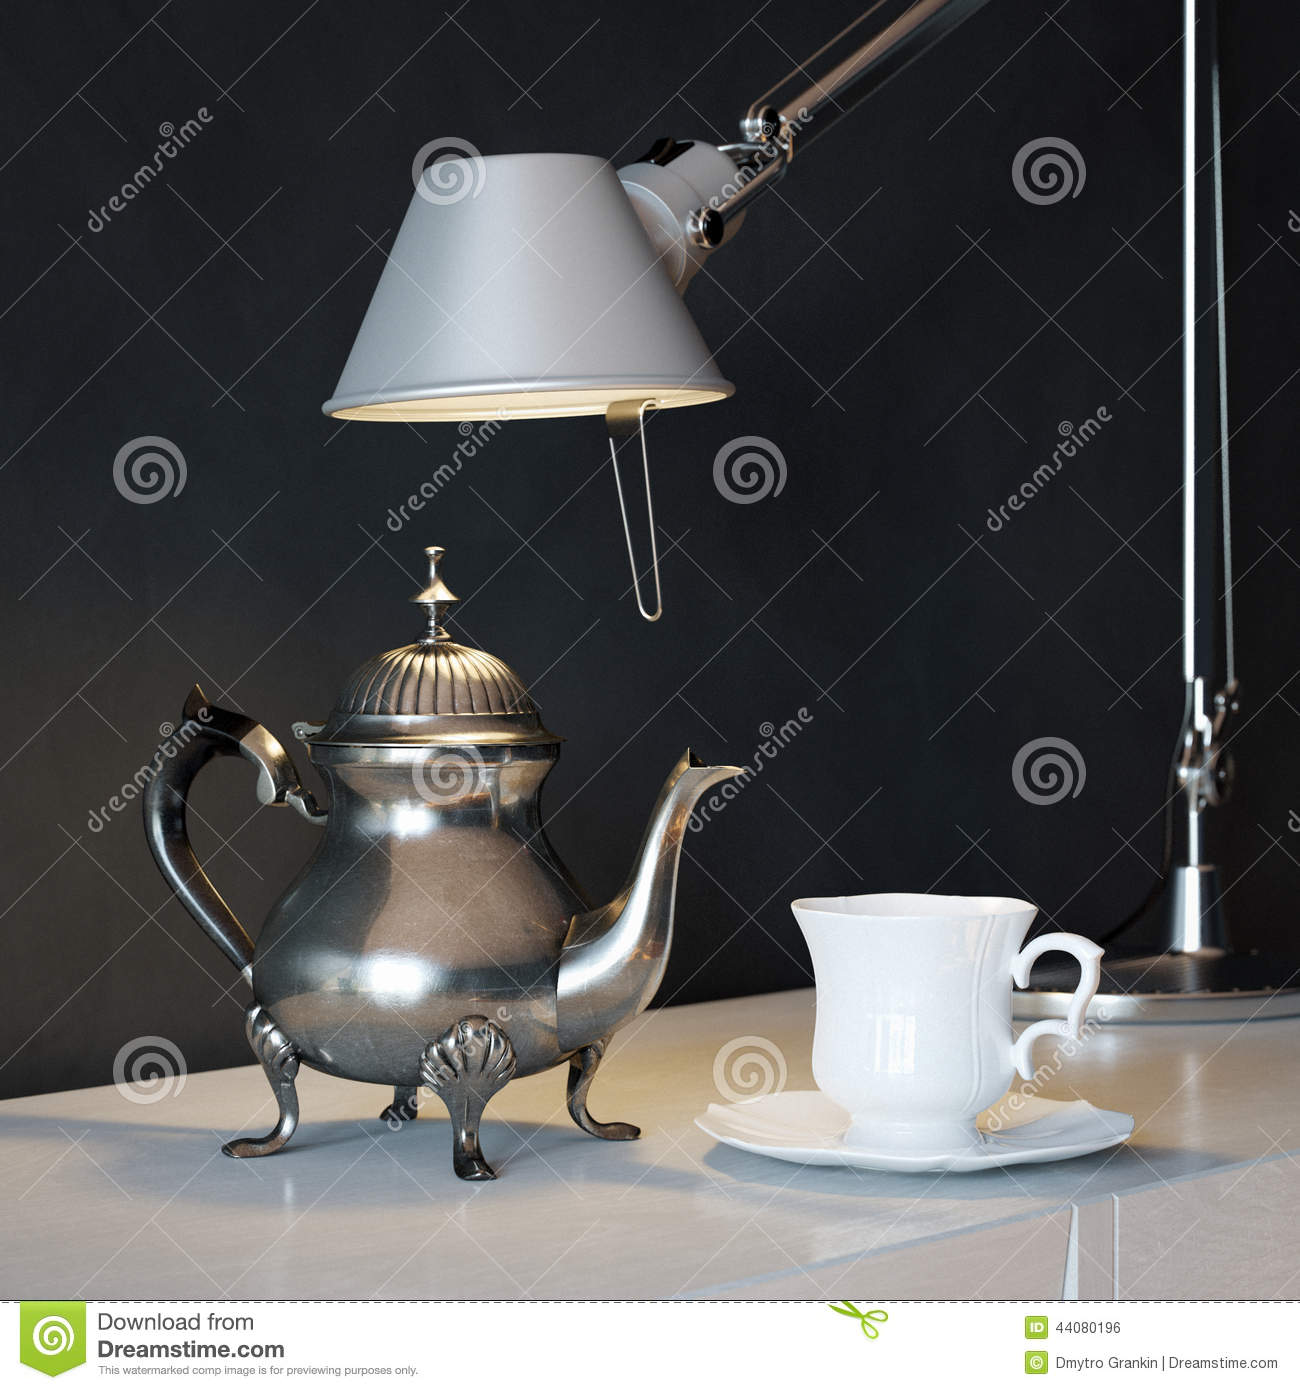 Spilled Paint Lamp Oil Lamp Coffee Stain Stock Photography Cartoondealer